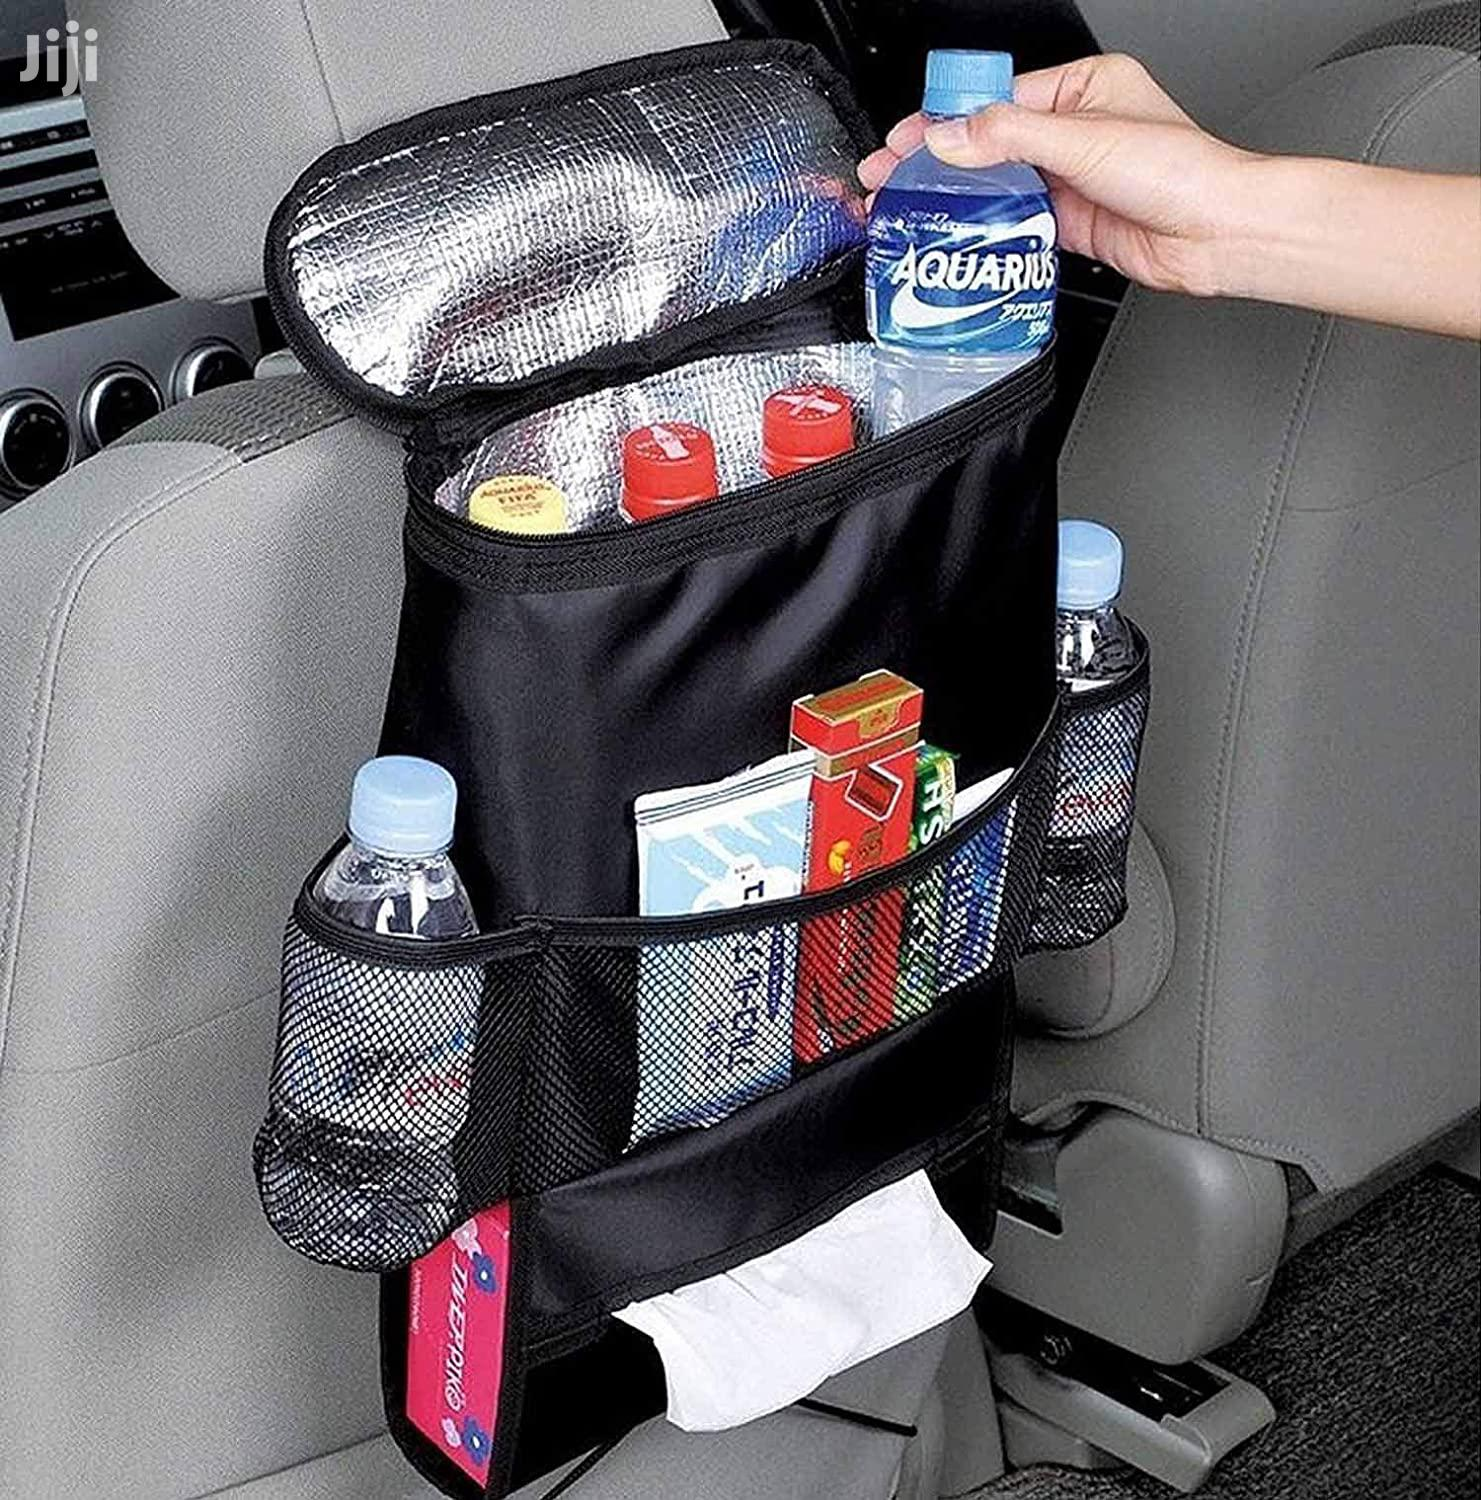 Car Seat Multi Pocket Storage Organiser (1x)   Vehicle Parts & Accessories for sale in Accra Metropolitan, Greater Accra, Ghana